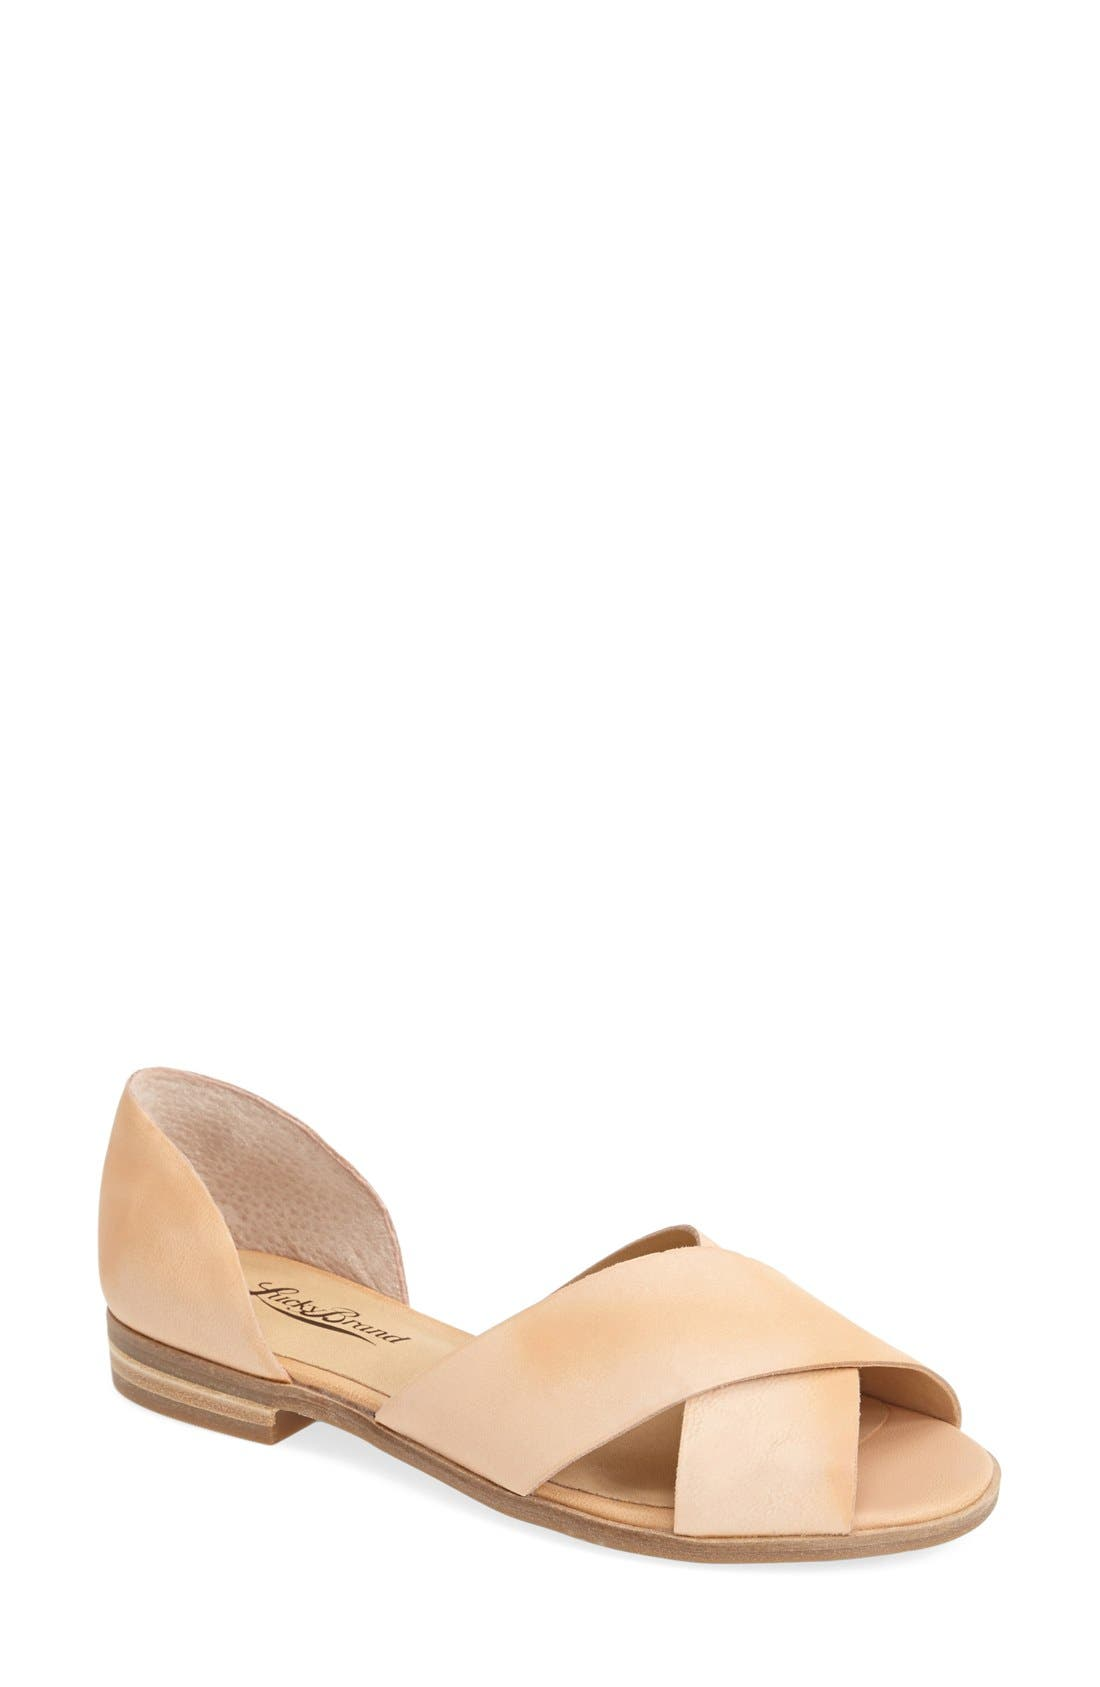 Main Image - Lucky Brand 'Silla' Leather Cross Strap Sandal (Women)